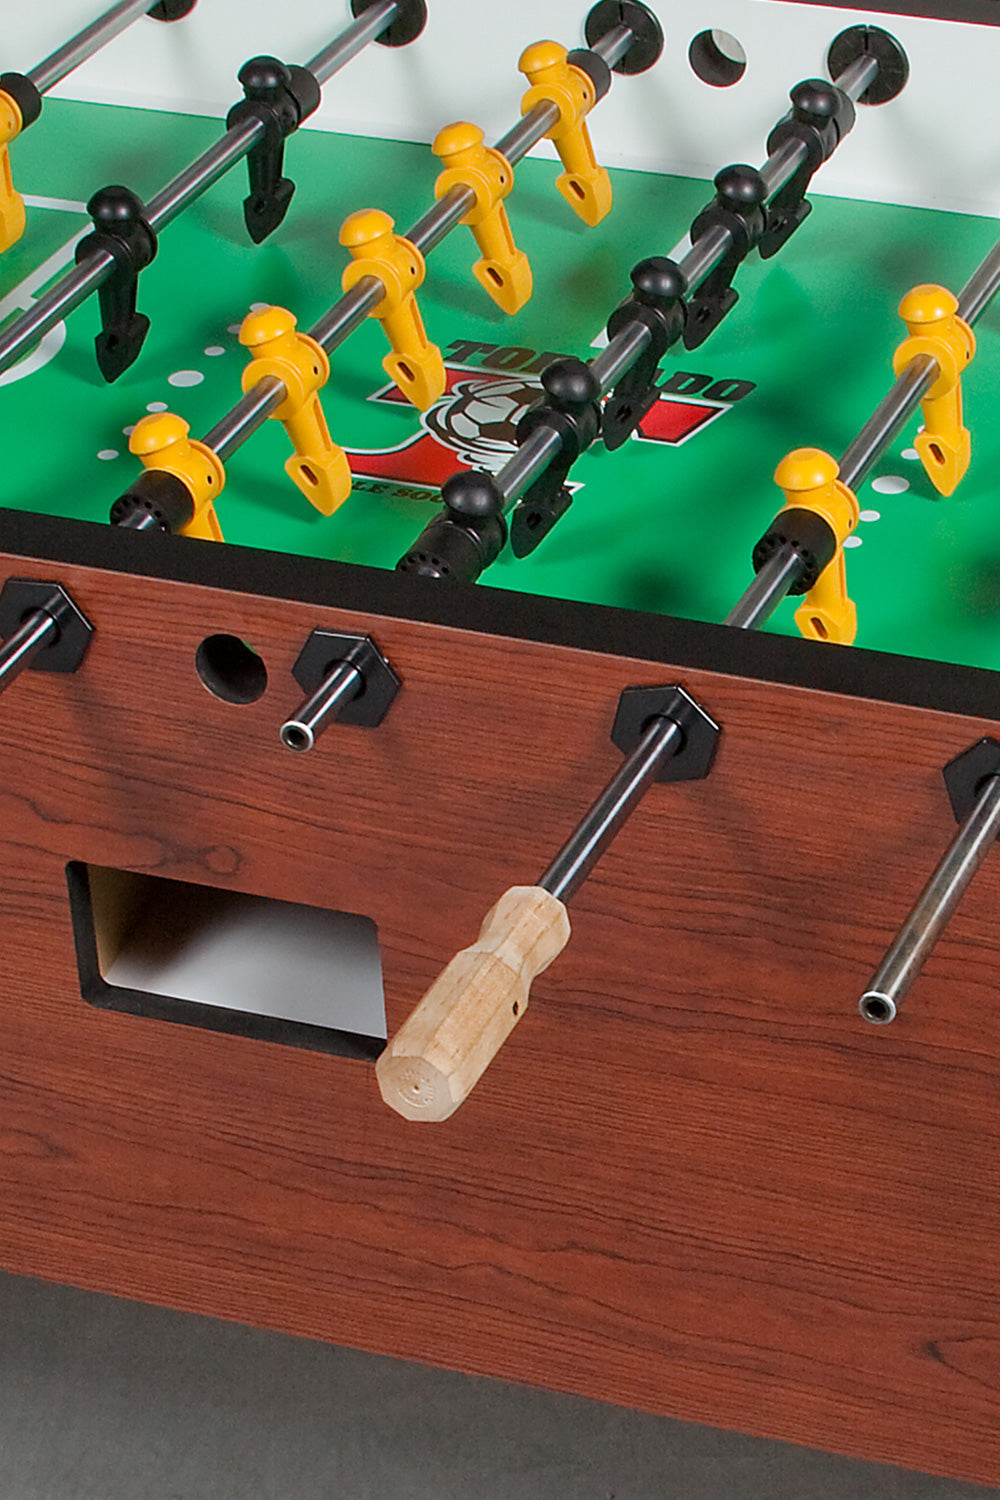 Tornado Elite Foosball - Blatt Billiards